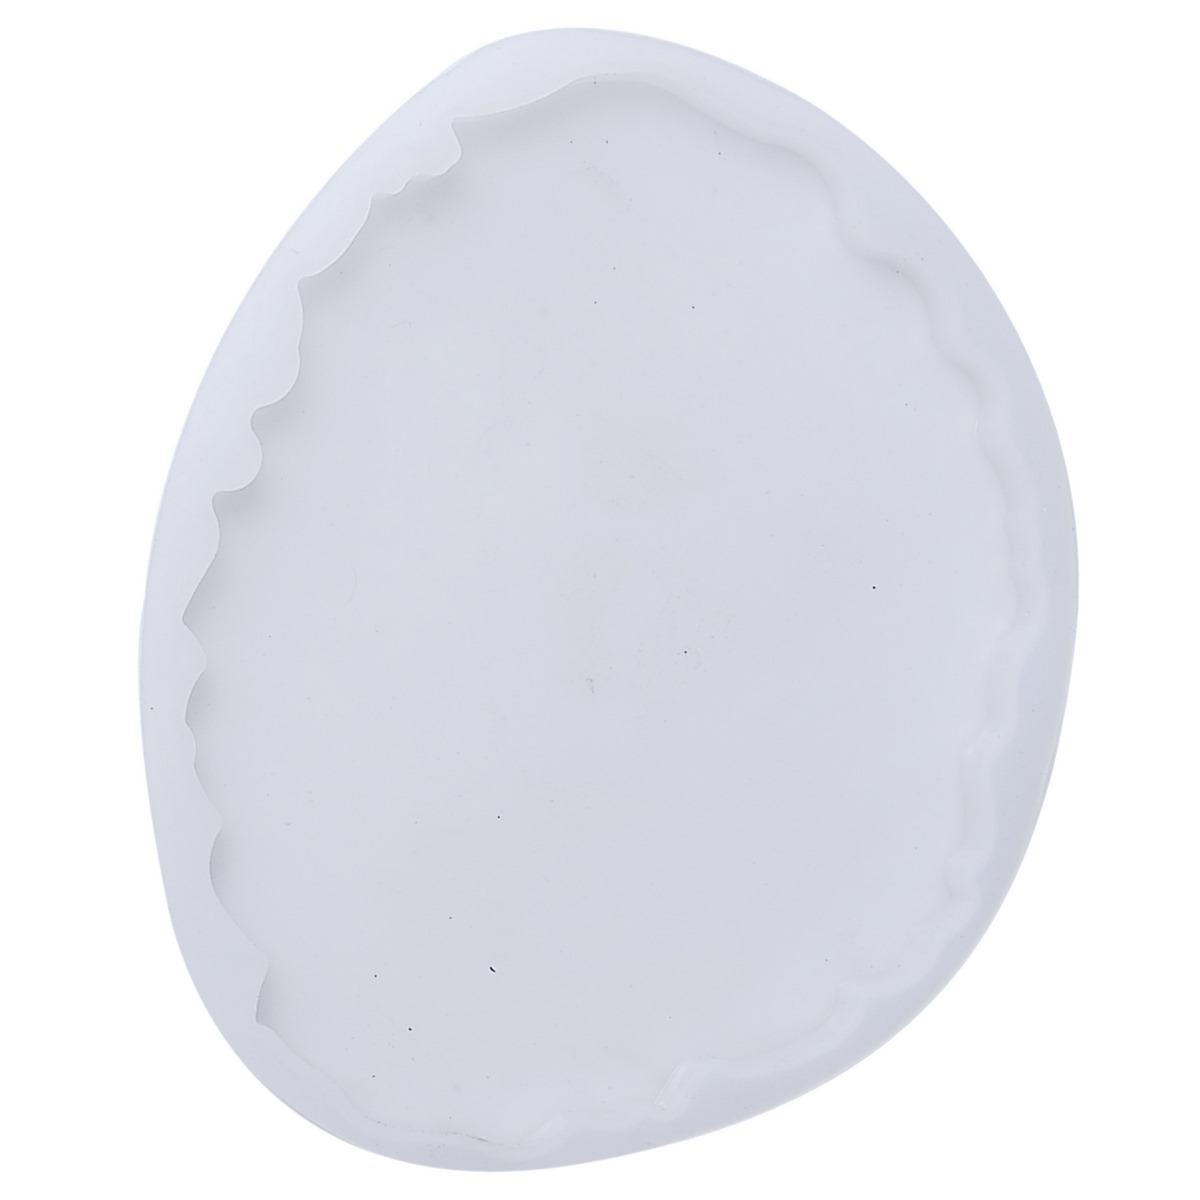 Resin Silicone Mould Agate Plate Design